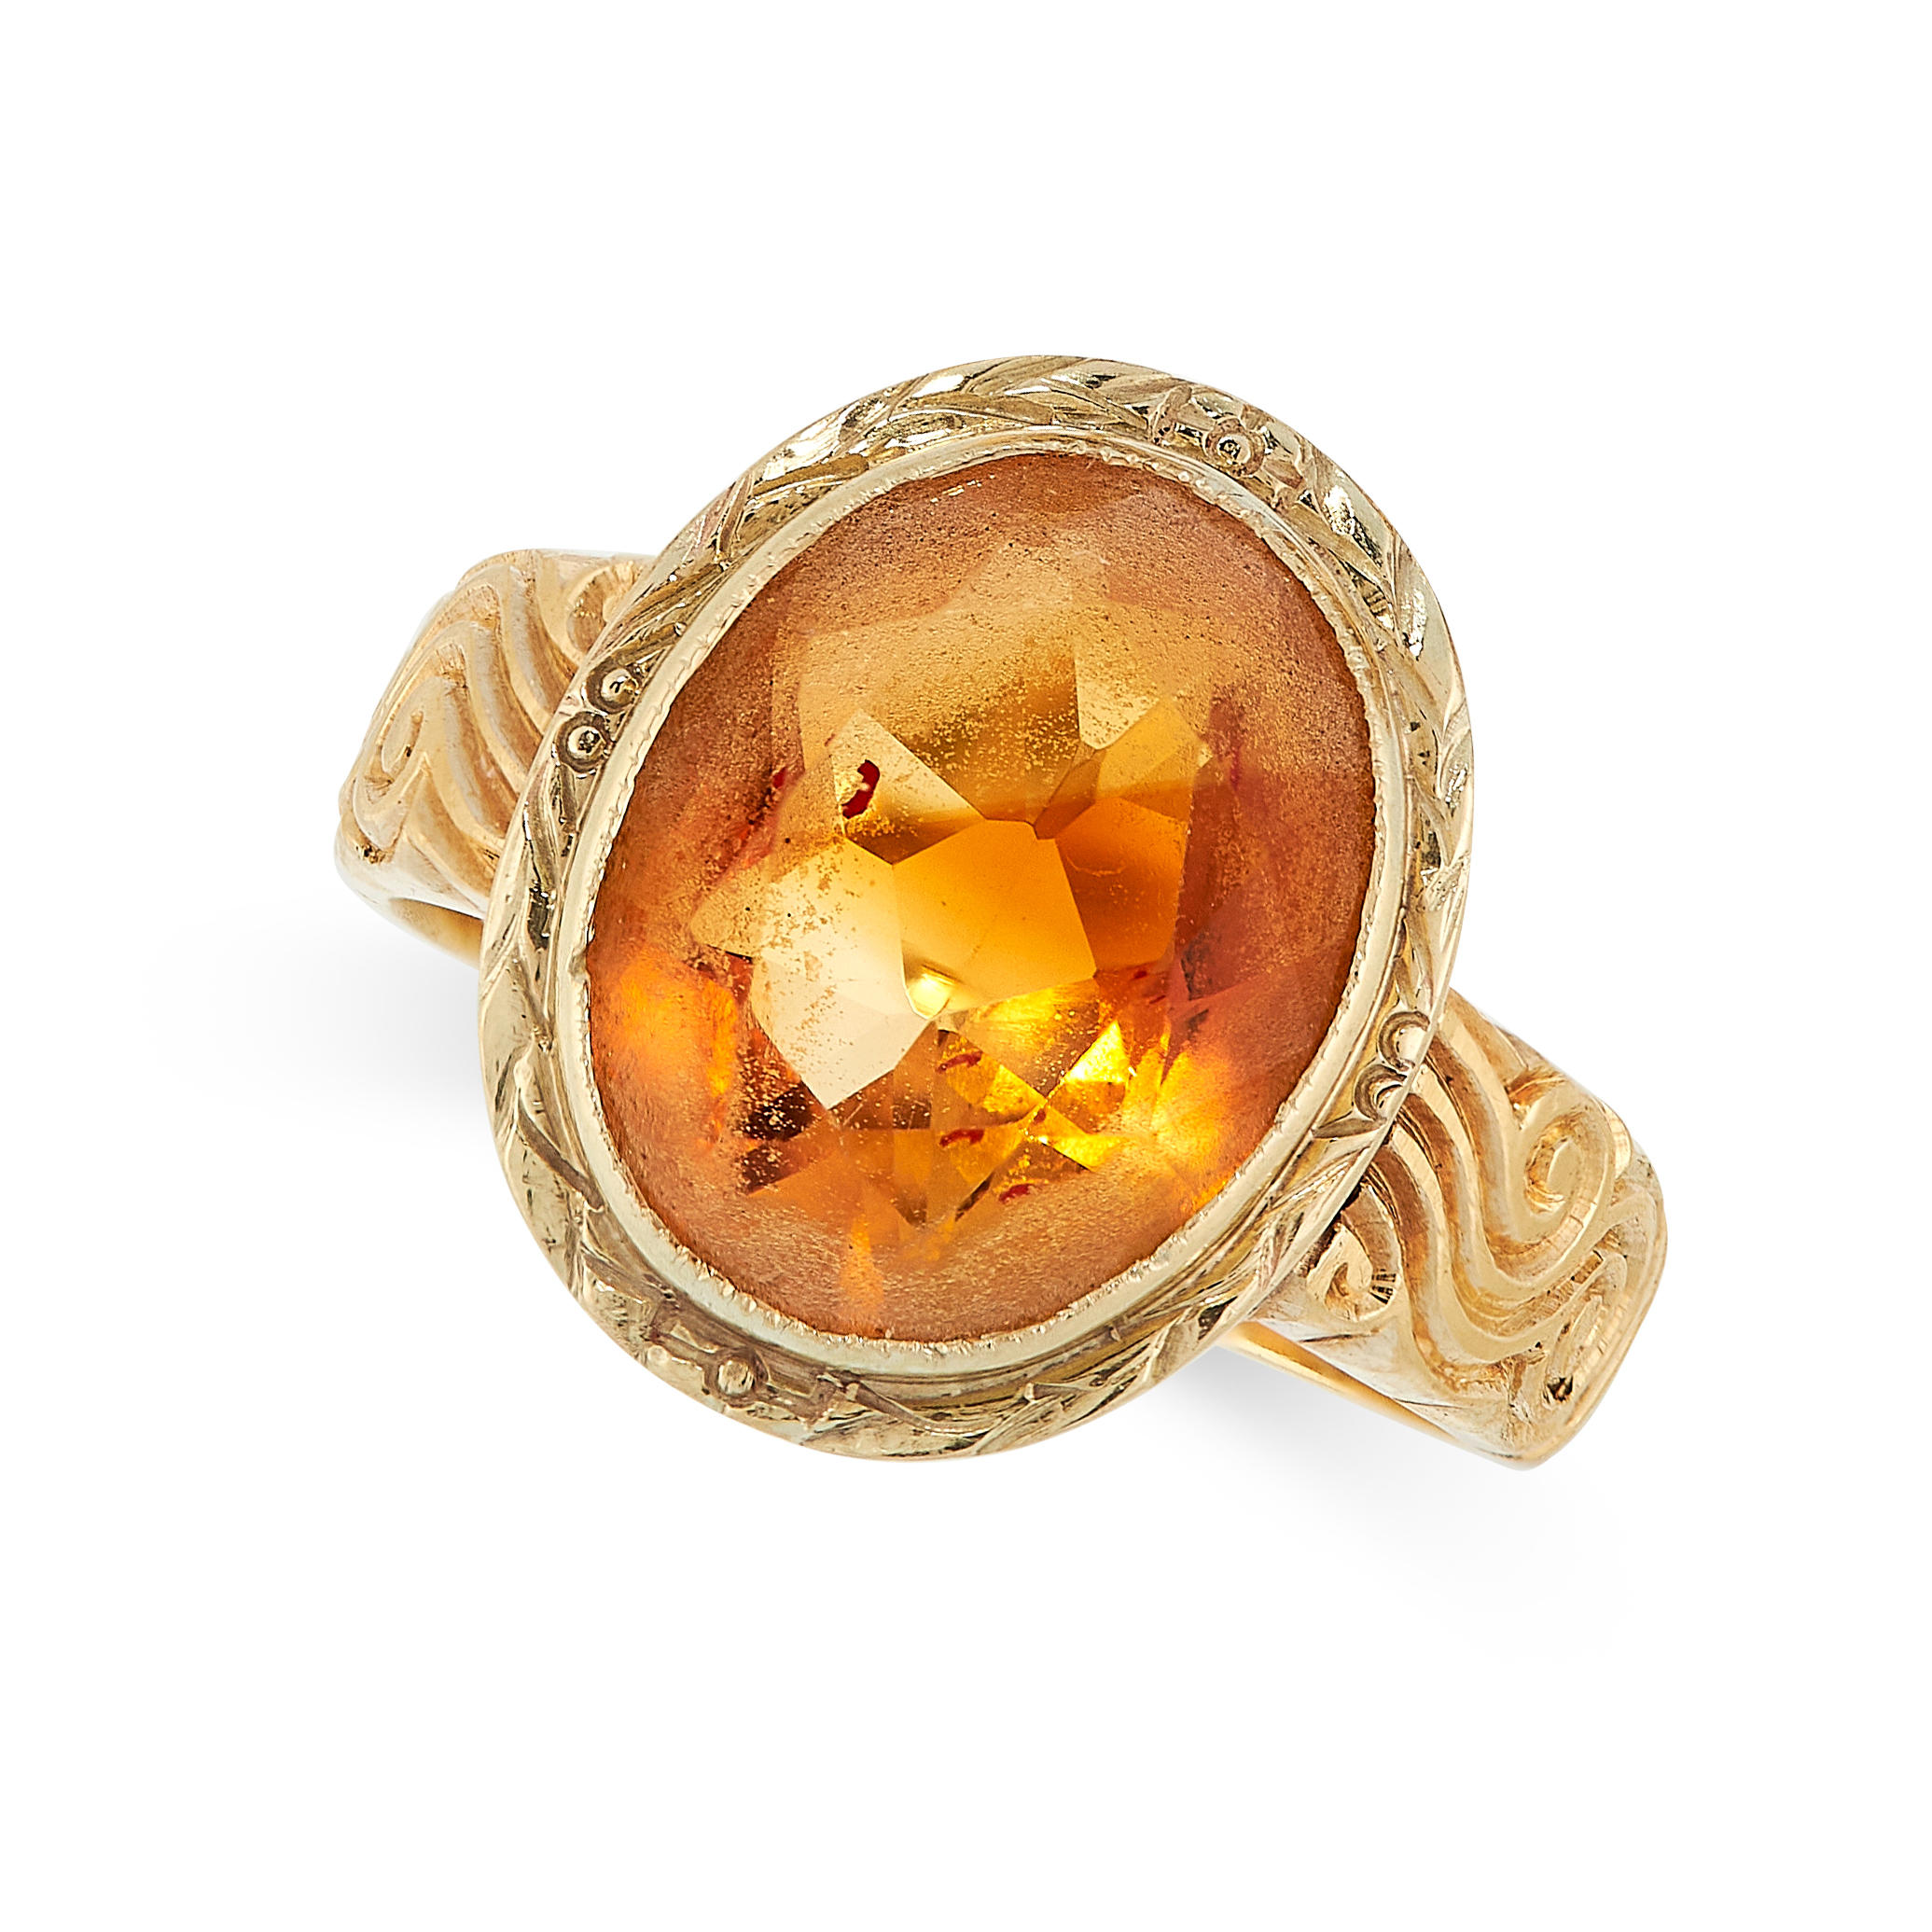 VINTAGE CITRINE EARRINGS AND RING SUITE each set an oval cut citrine within gold border, citrines